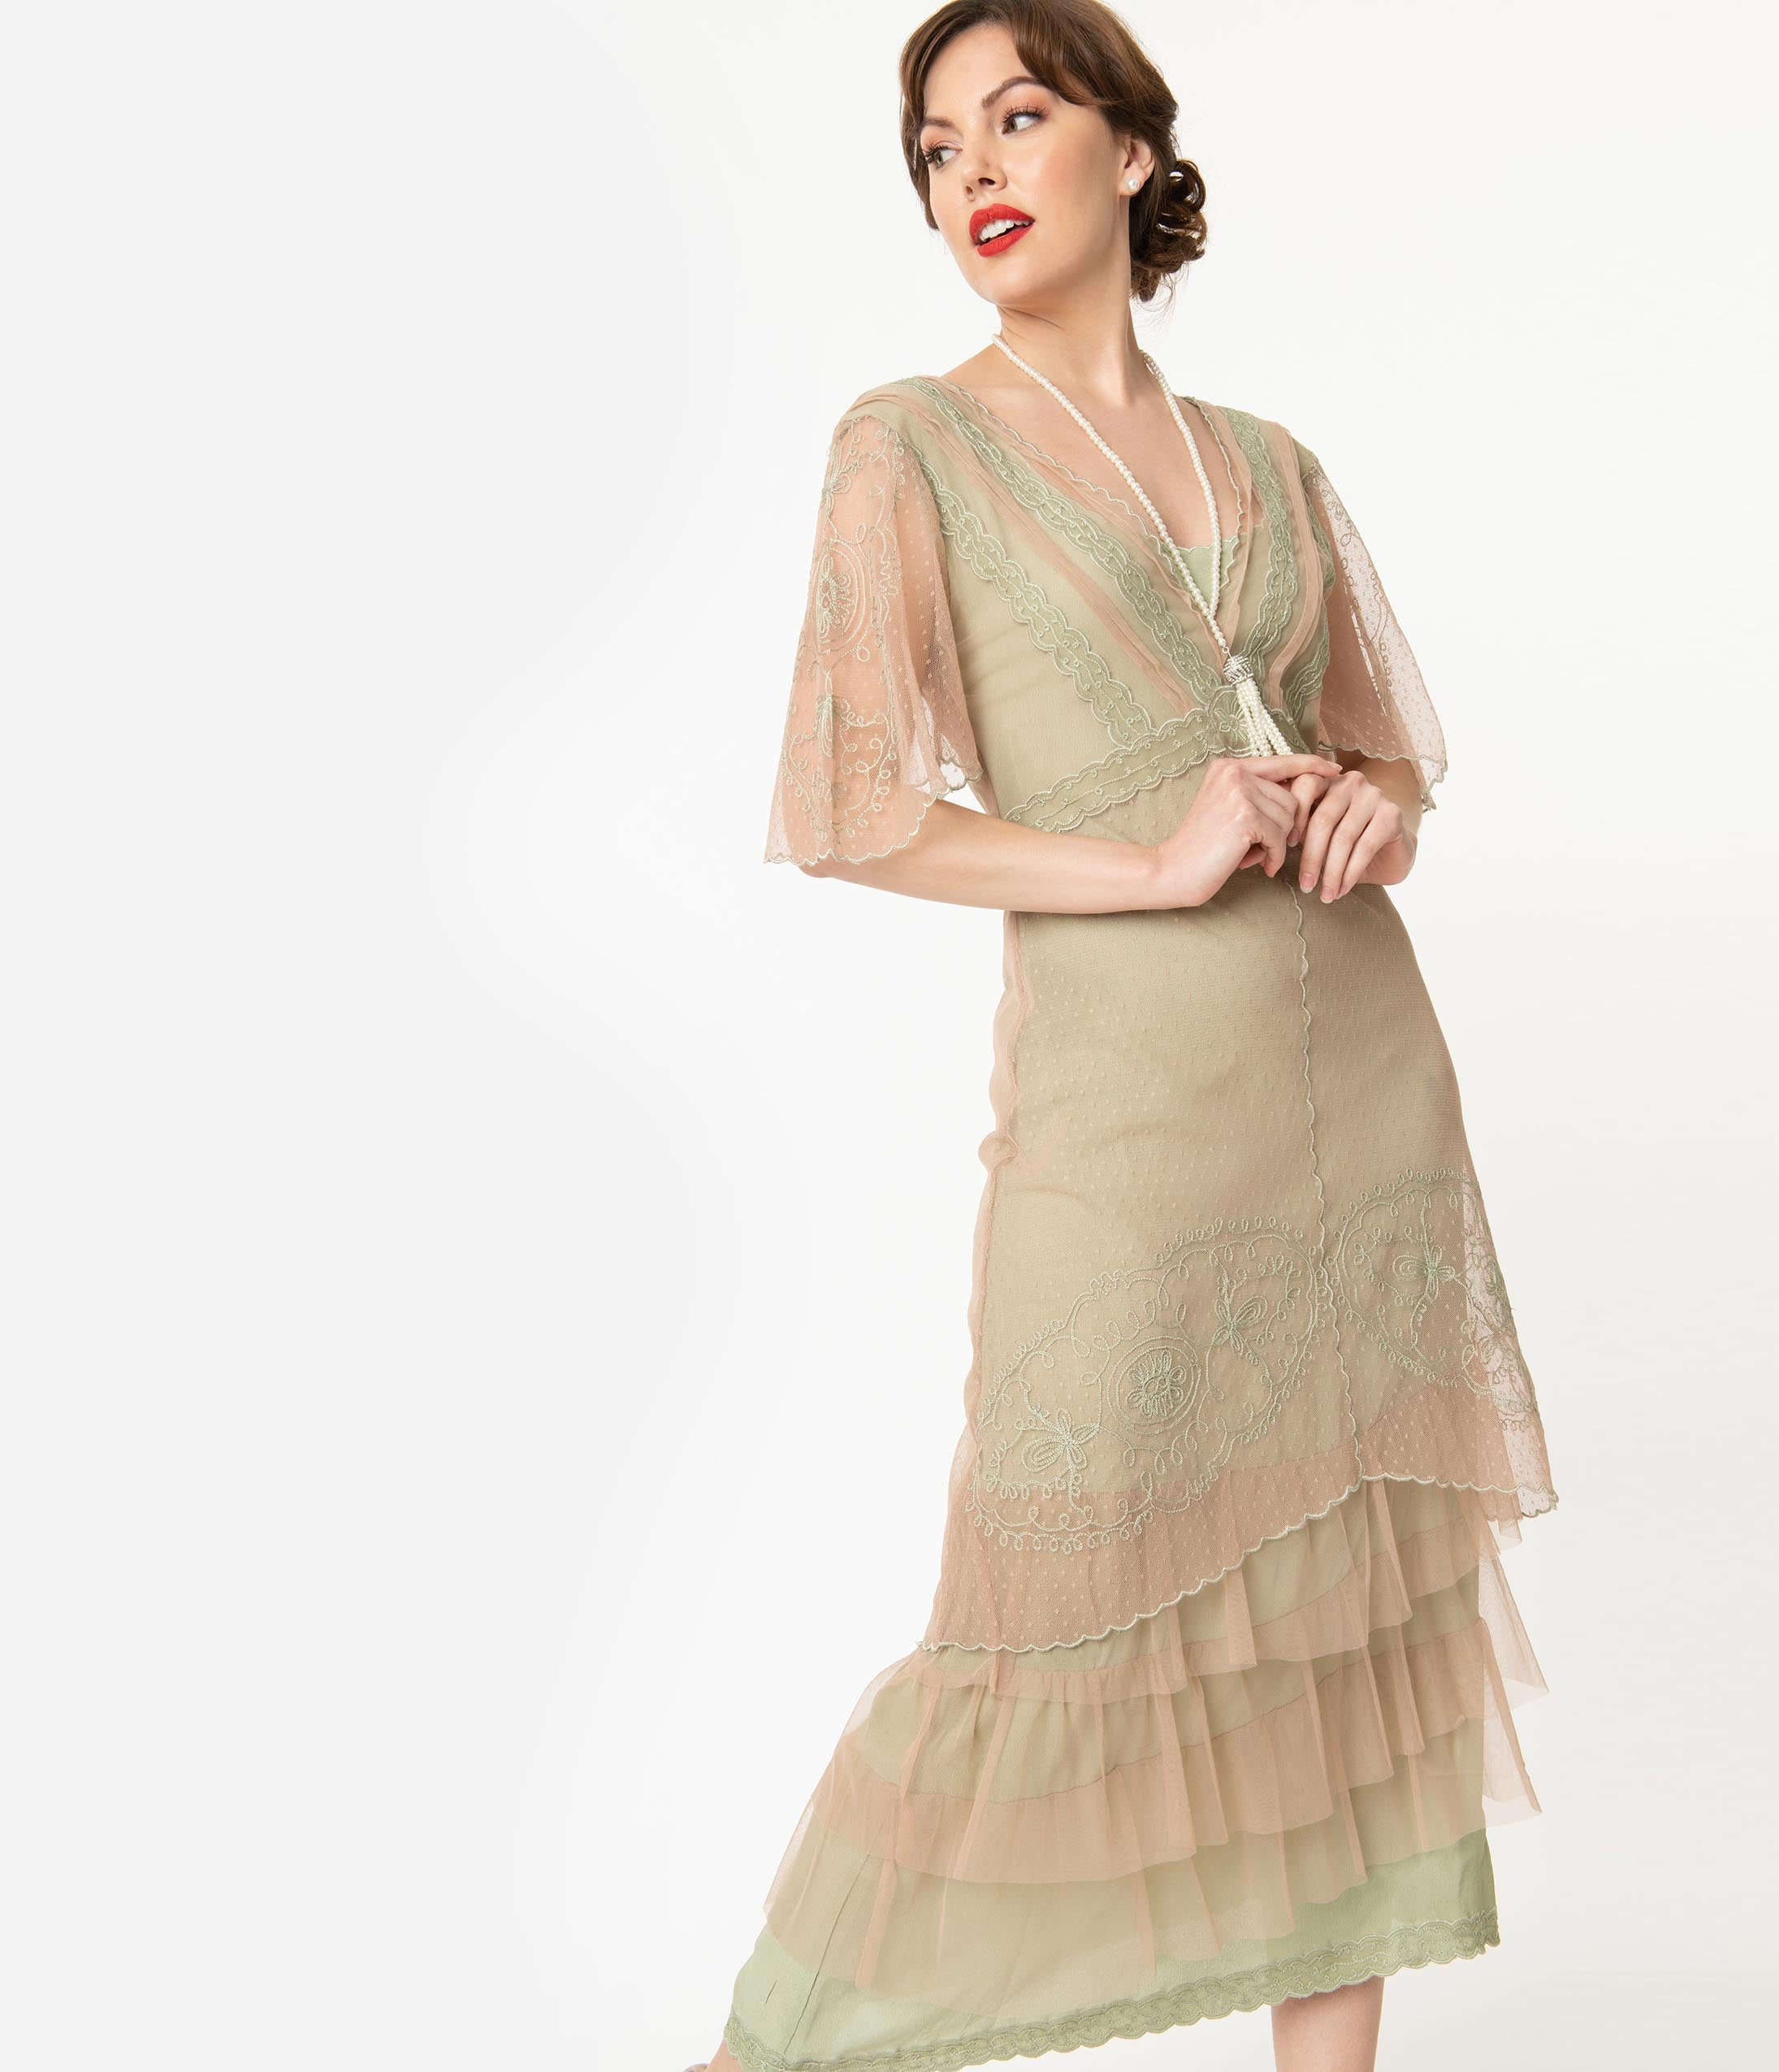 1920s Outfit Ideas: 10 Downton Abbey Inspired Costumes Vintage Style Golden Sage Downton Abbey Edwardian Flapper Dress $288.00 AT vintagedancer.com